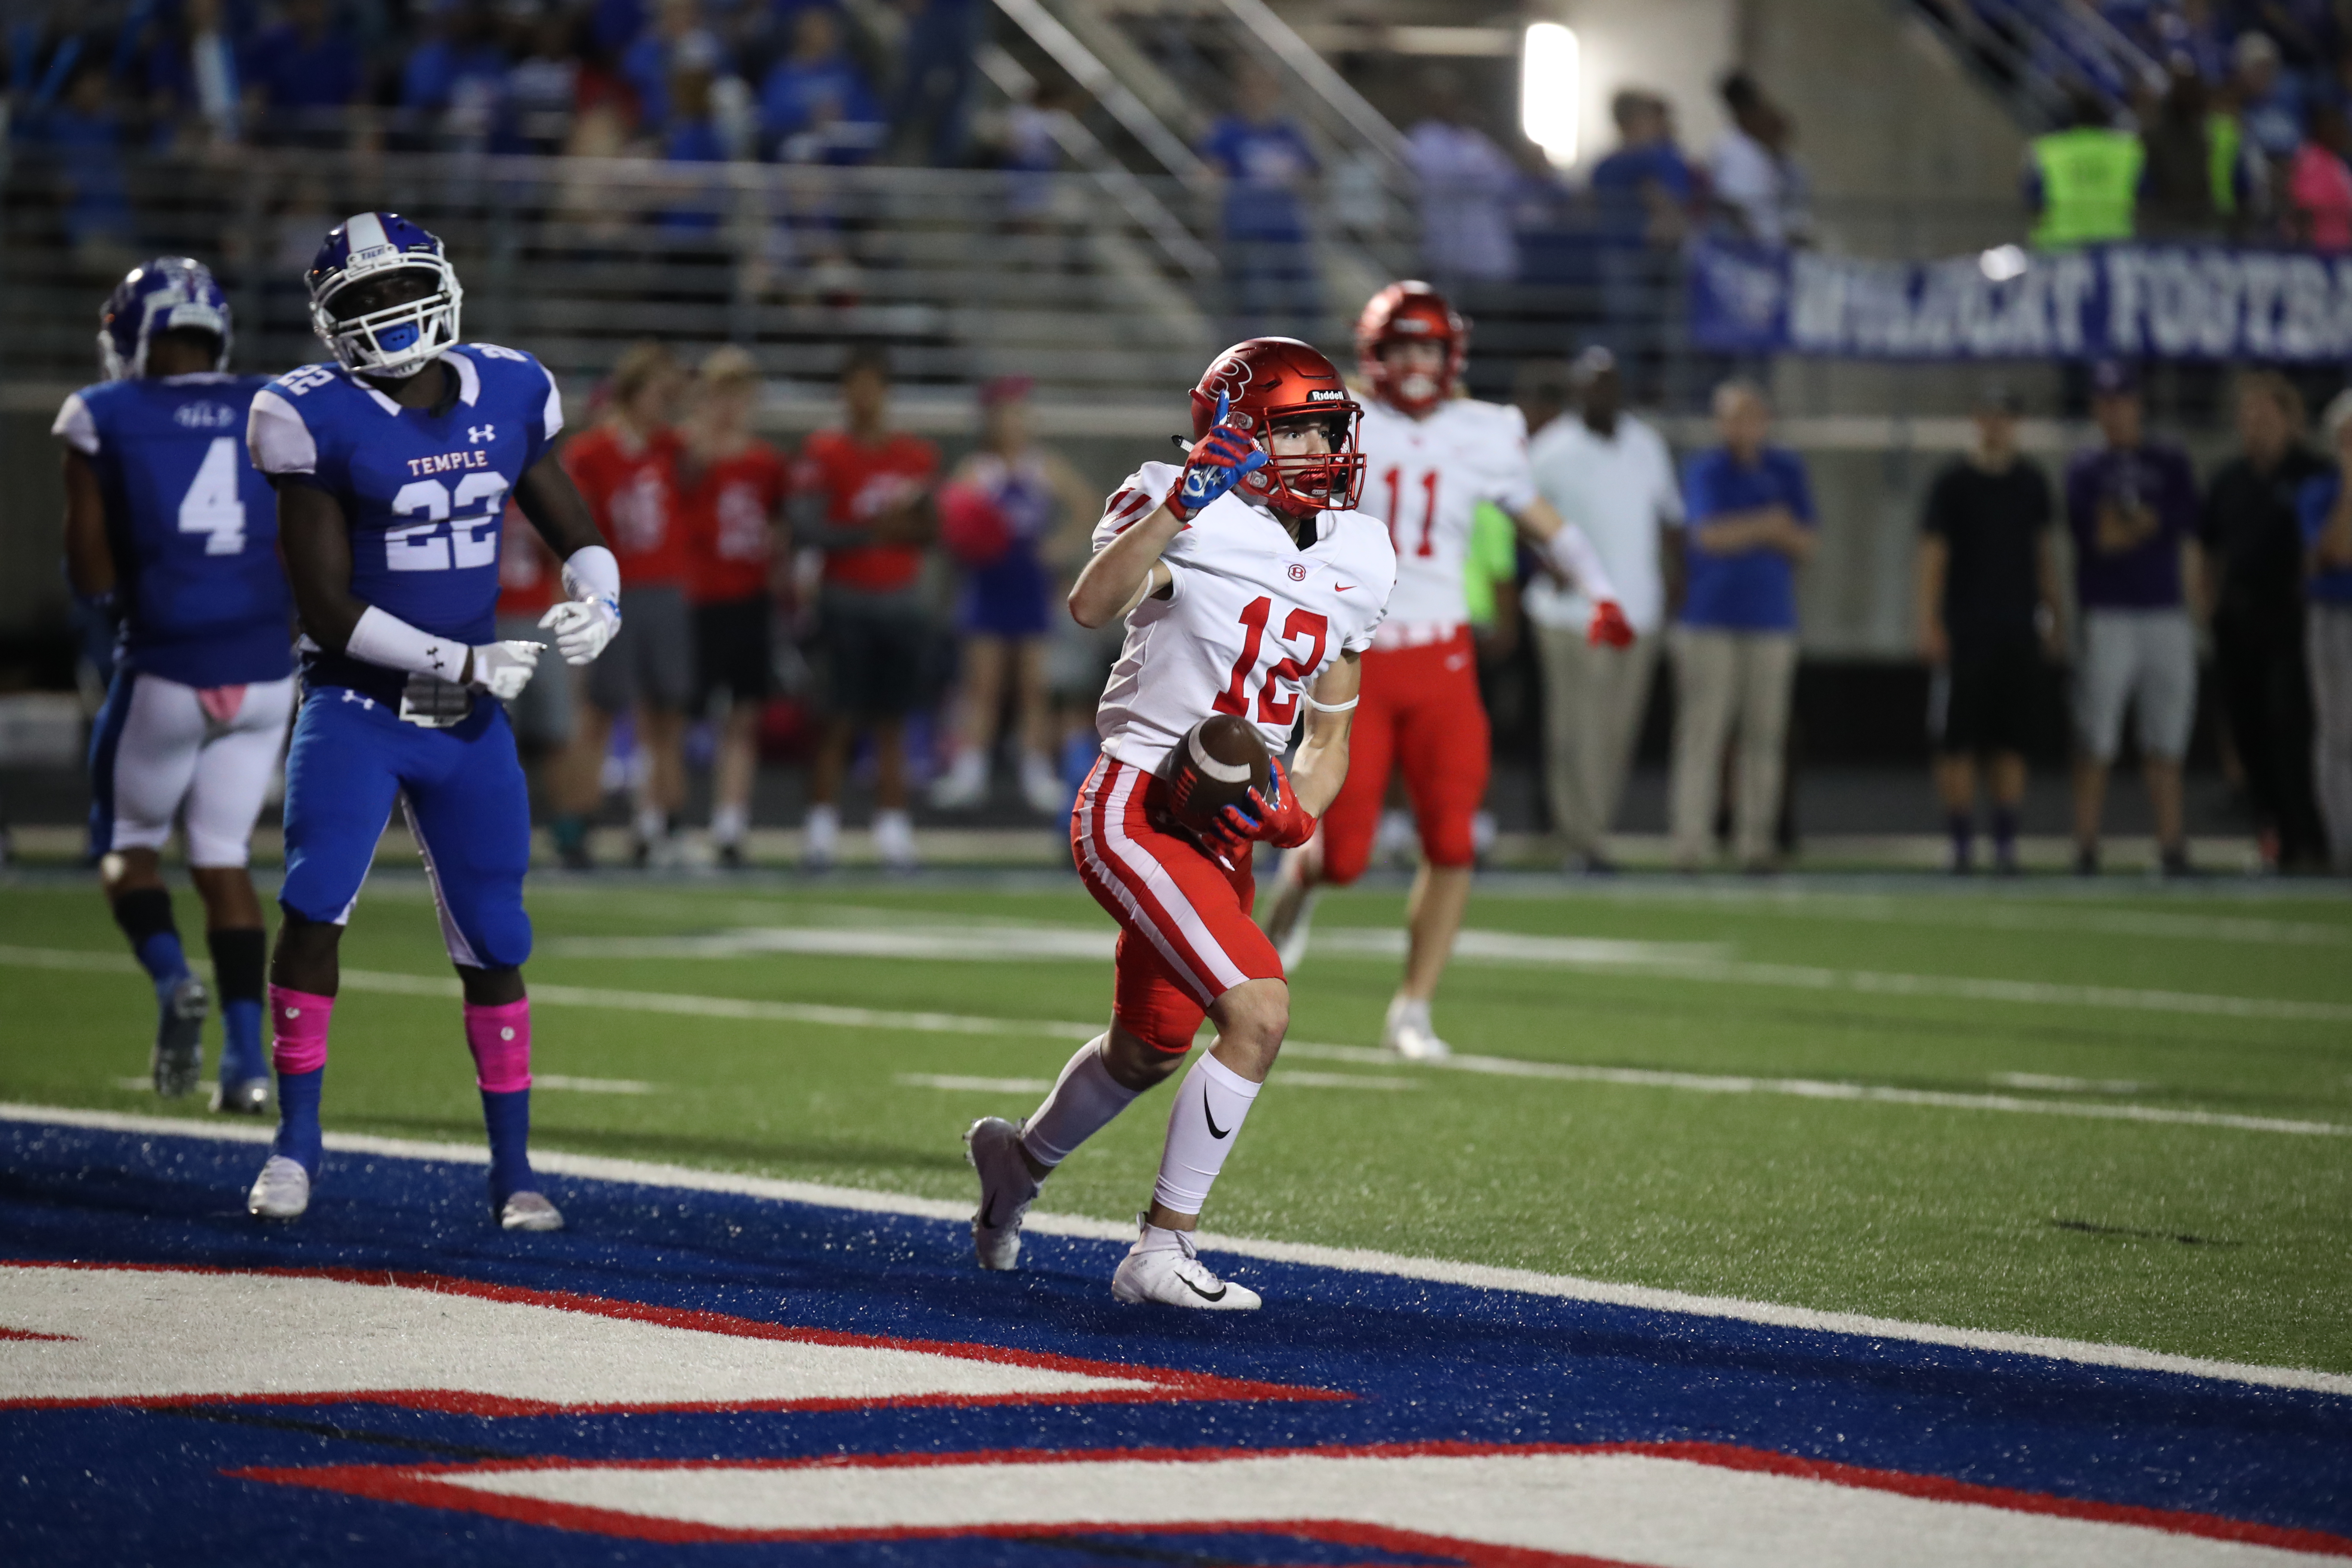 Asset over the middle: Belton receiver Perez willing to make tough catch